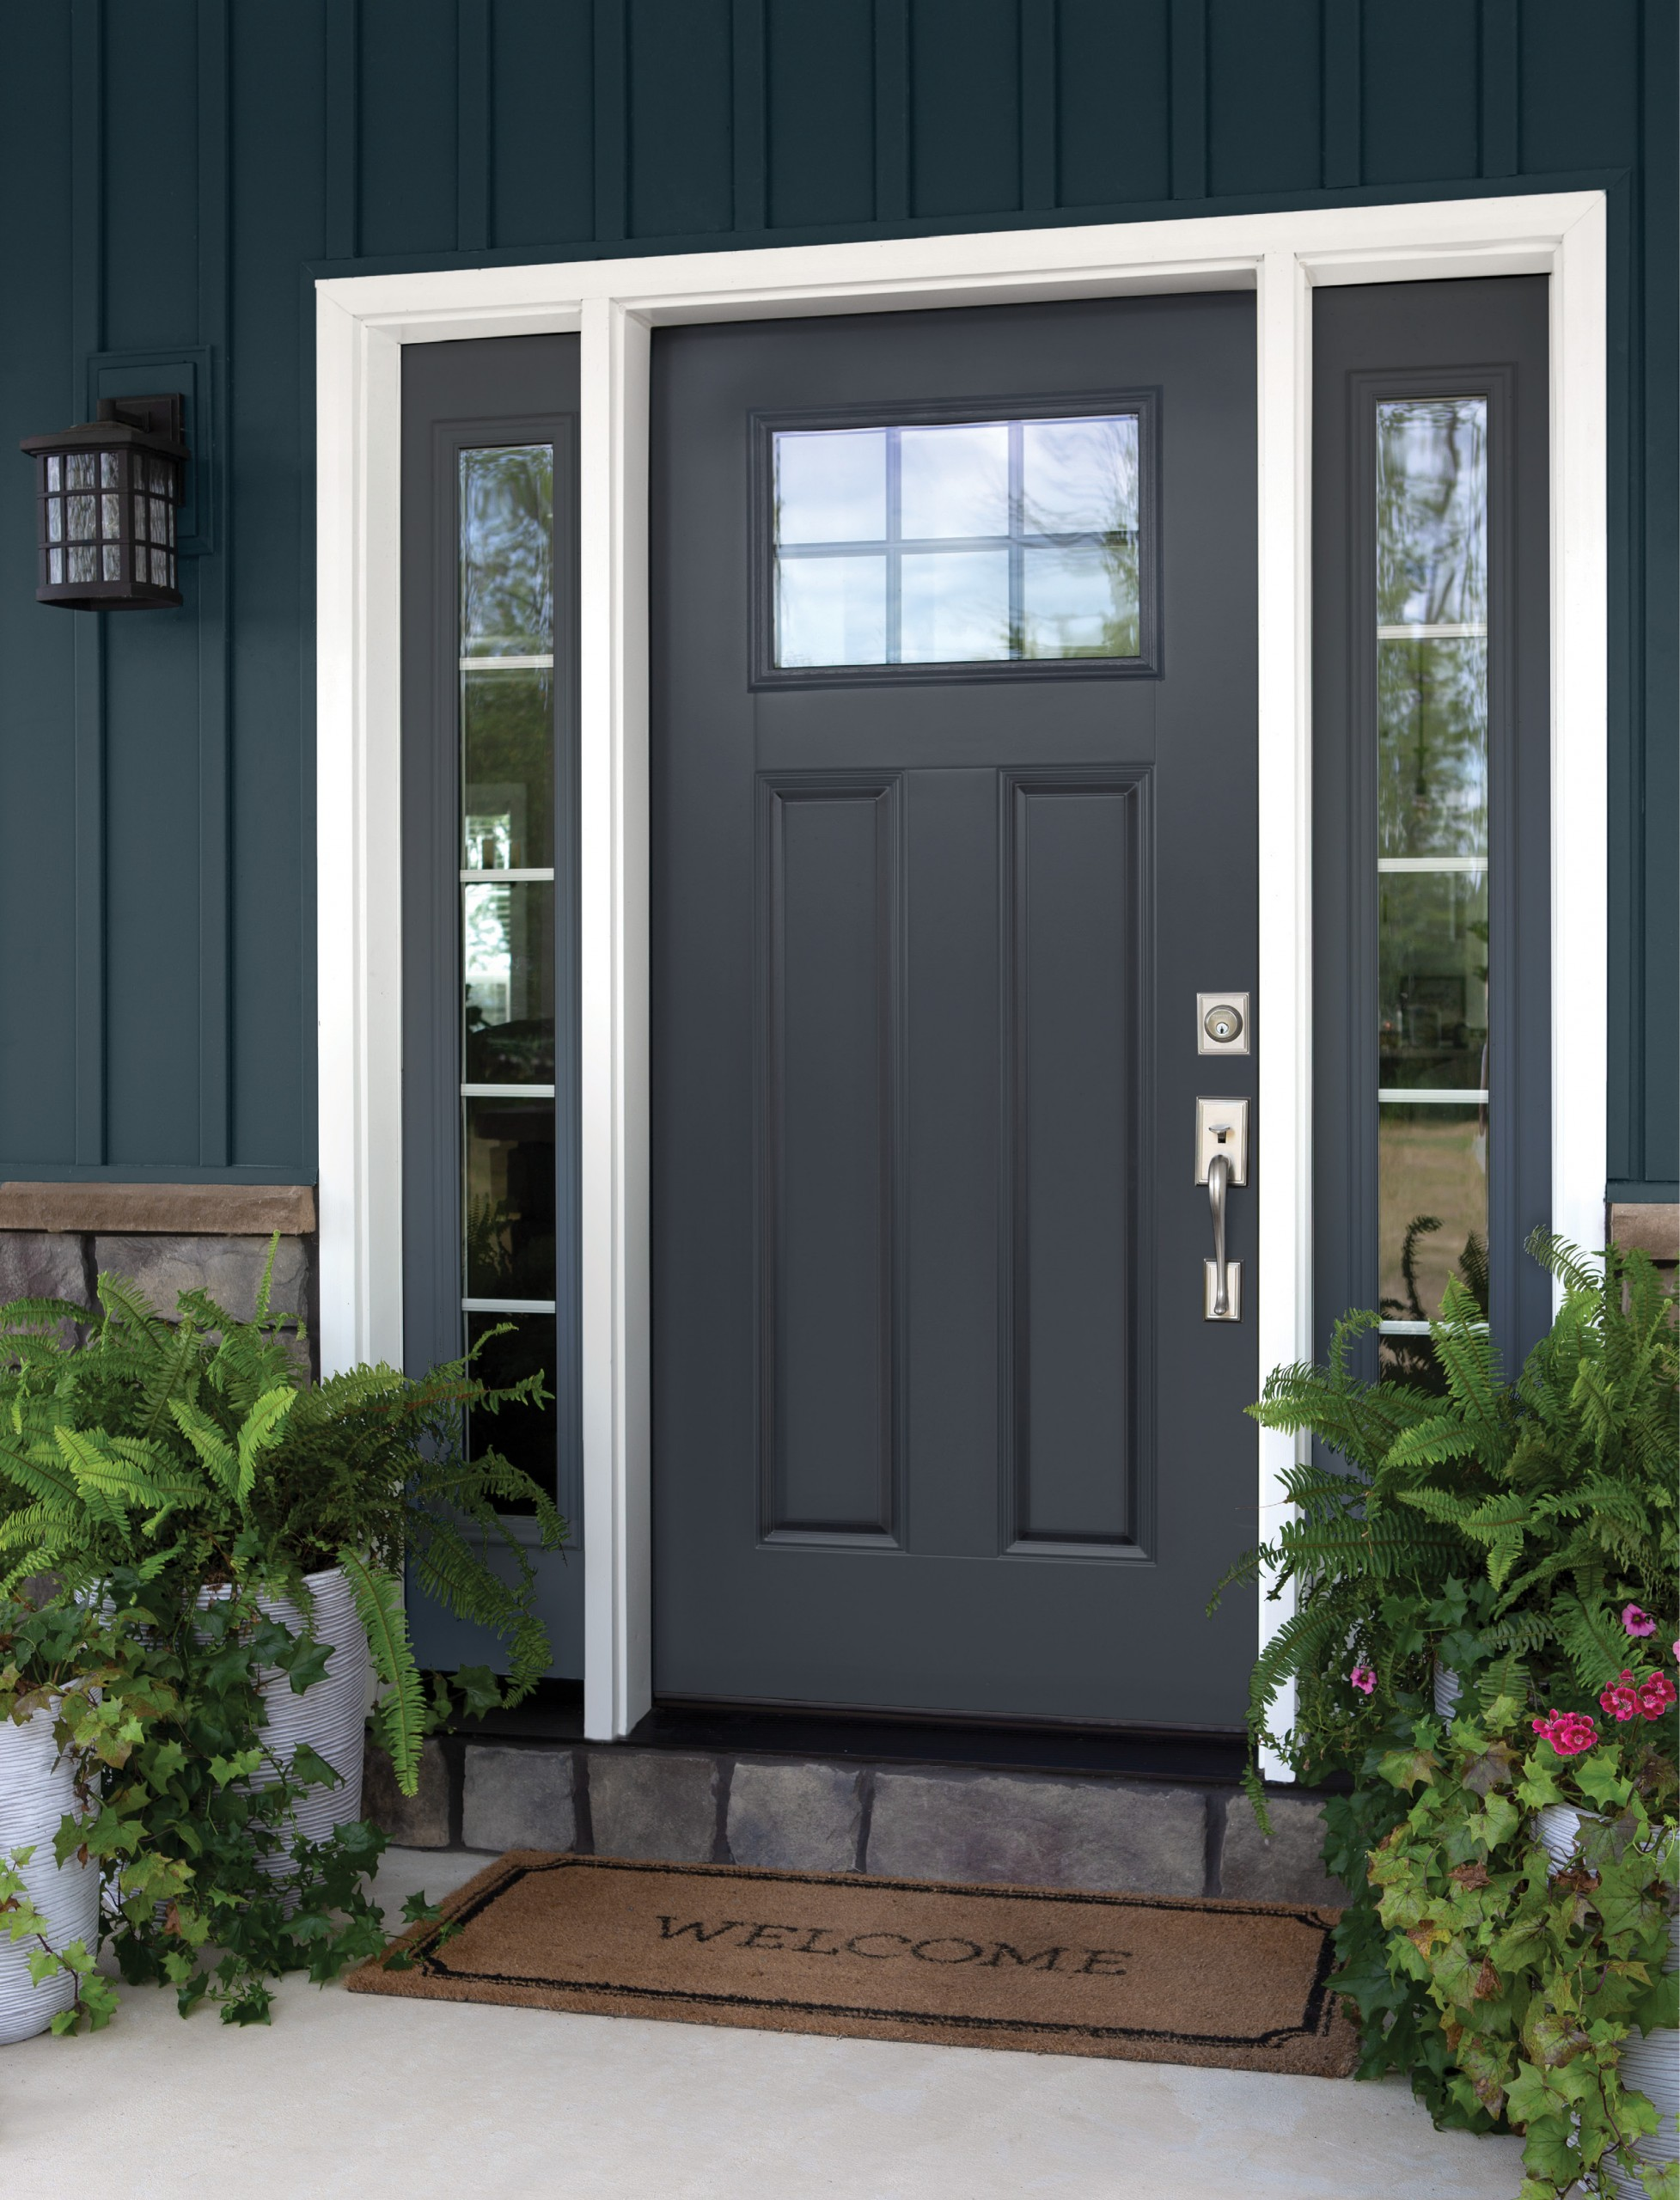 Arizona Window and Door in Scottsdale and Tucson showing decorative door with windows